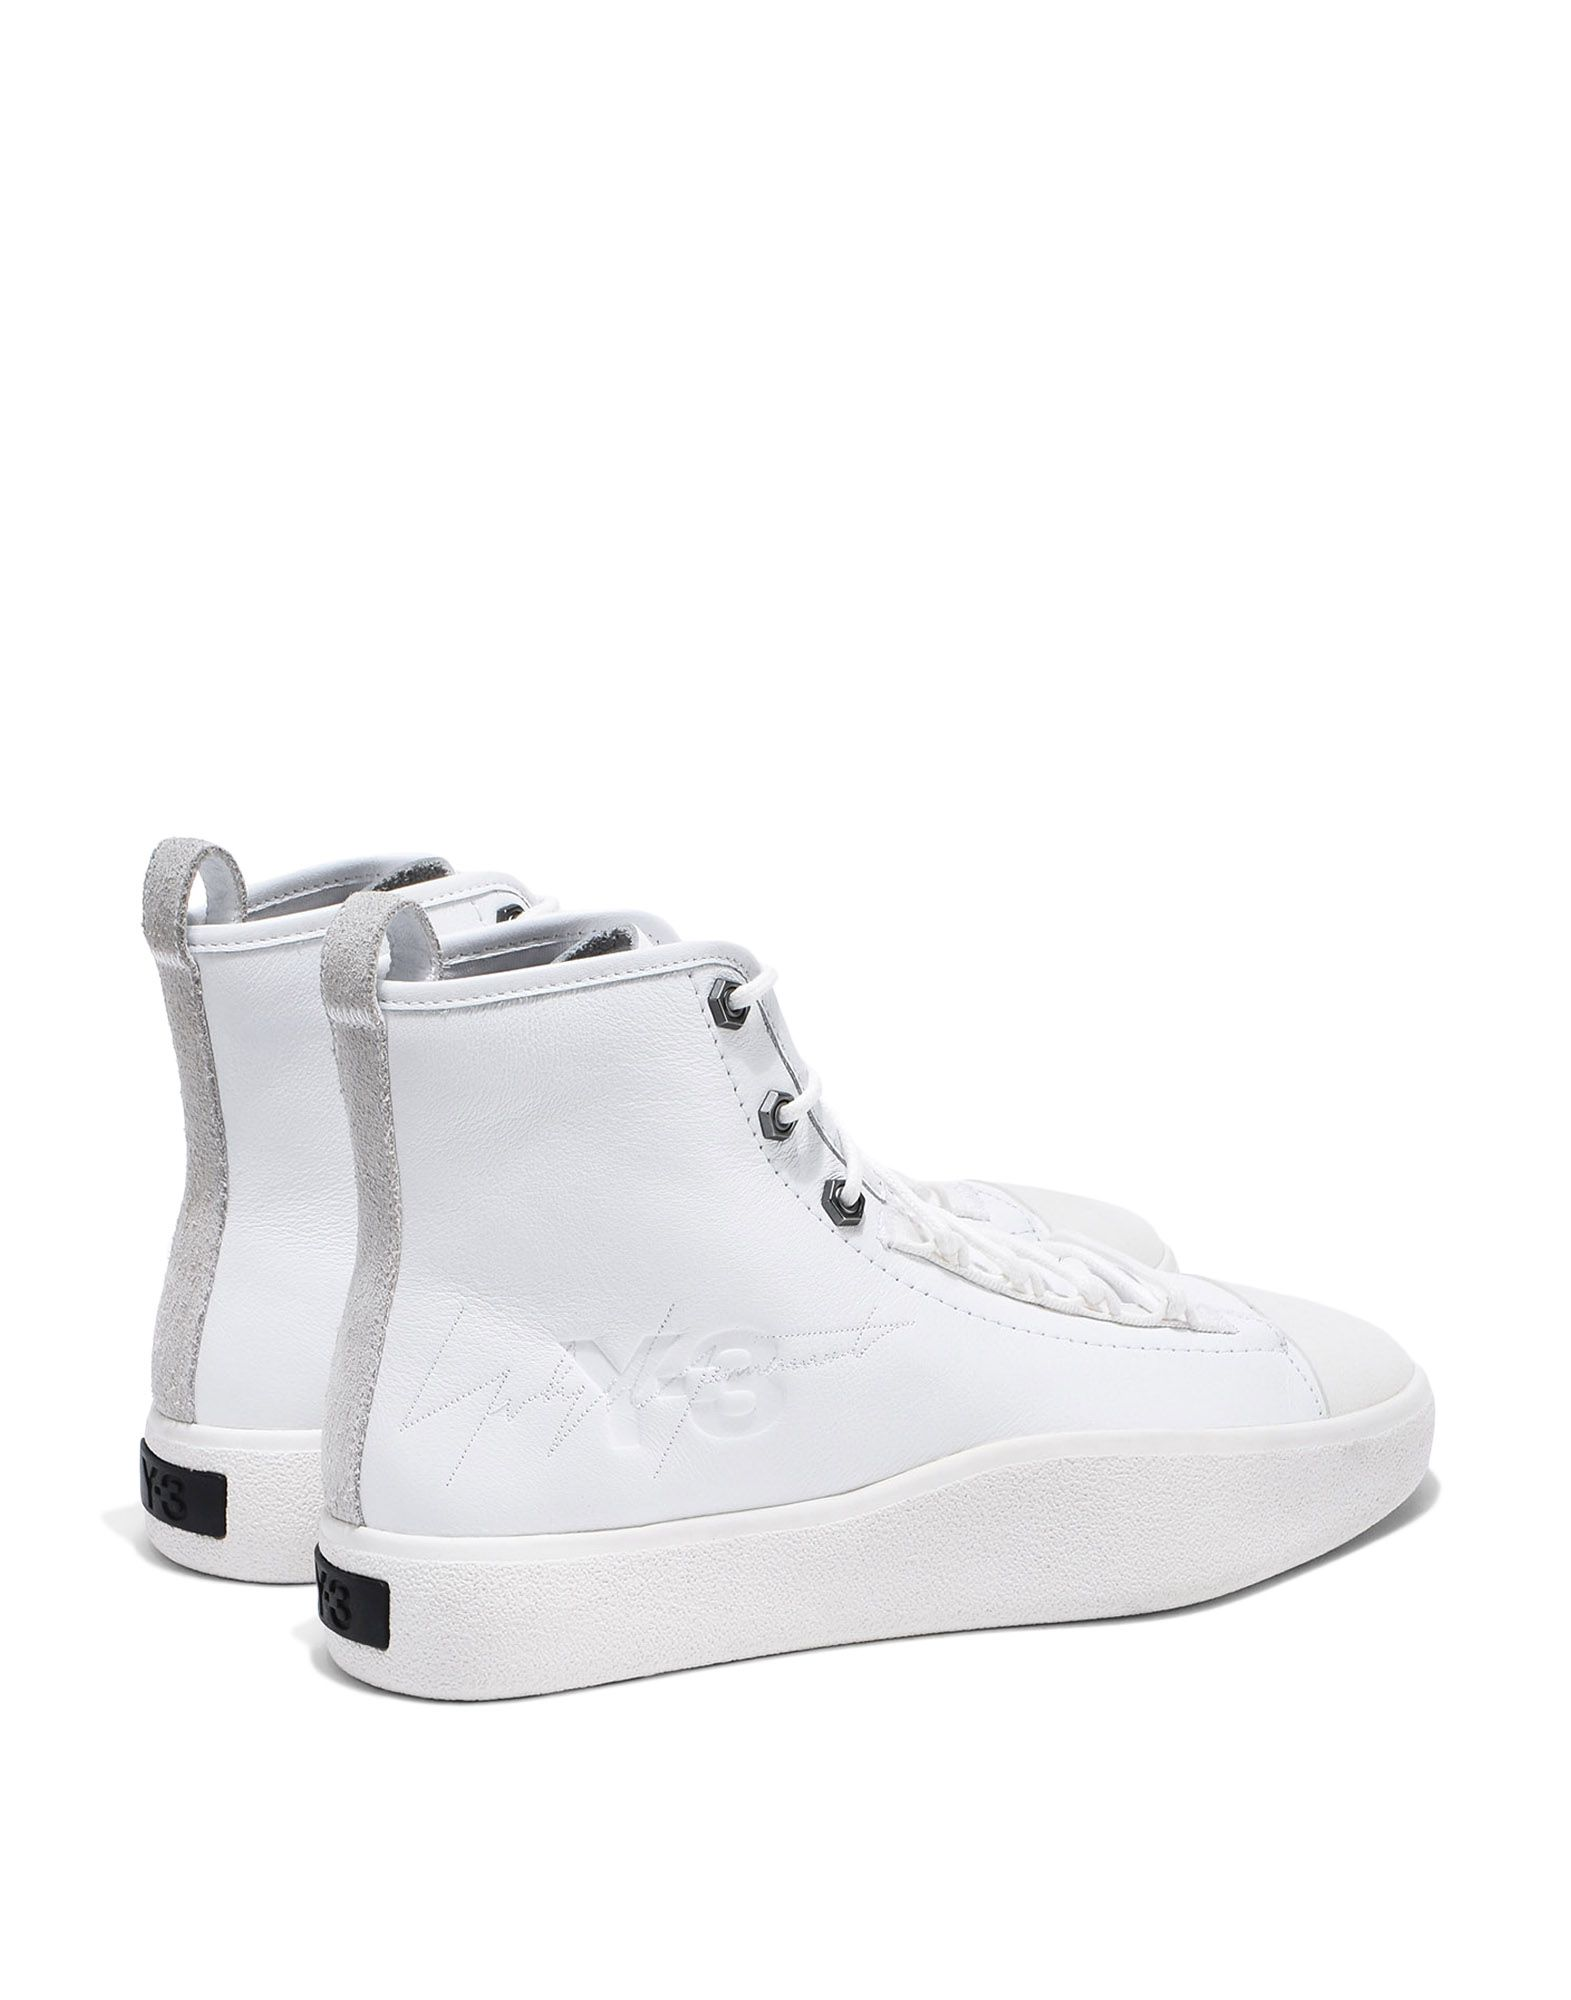 Y-3 Y-3 Bashyo II High-top sneakers E c